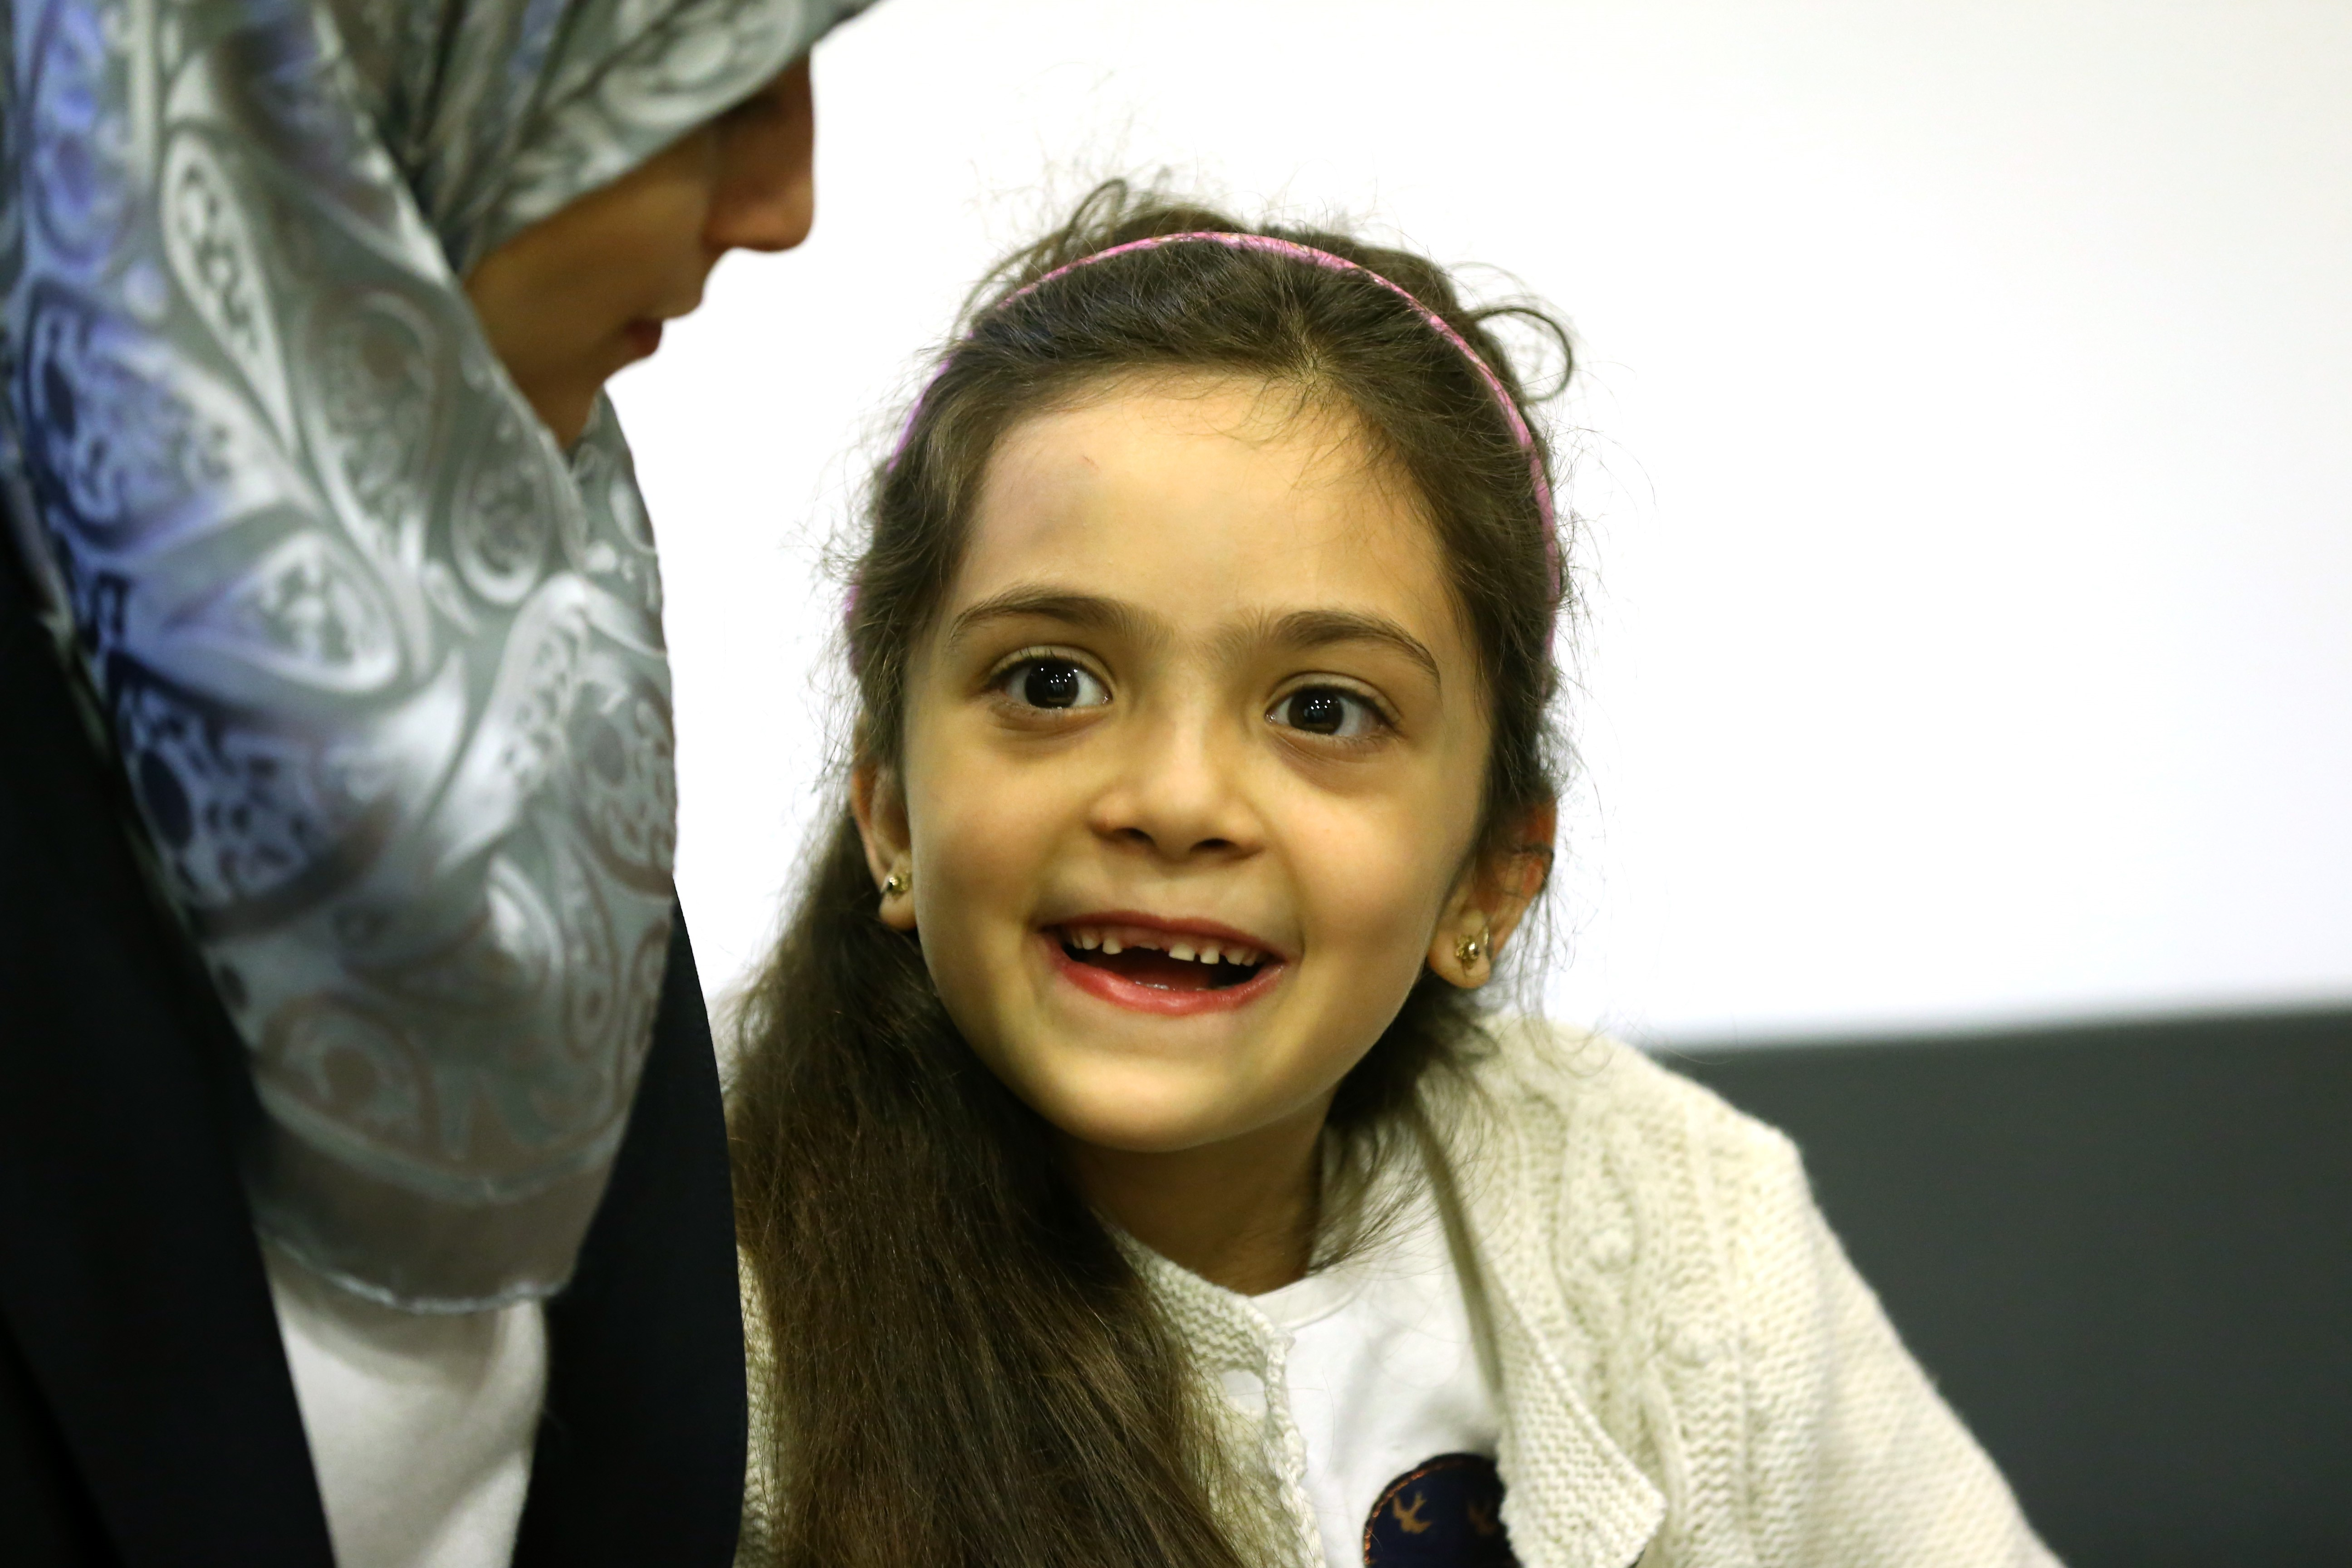 Syrian Bana Alabed (R), a seven-year-old girl who tweeted about the attacks in Aleppo, speaks to media with her family after she met with Turkish President Recep Tayyip Erdogan in Ankara, Turkey on December 21, 2016.